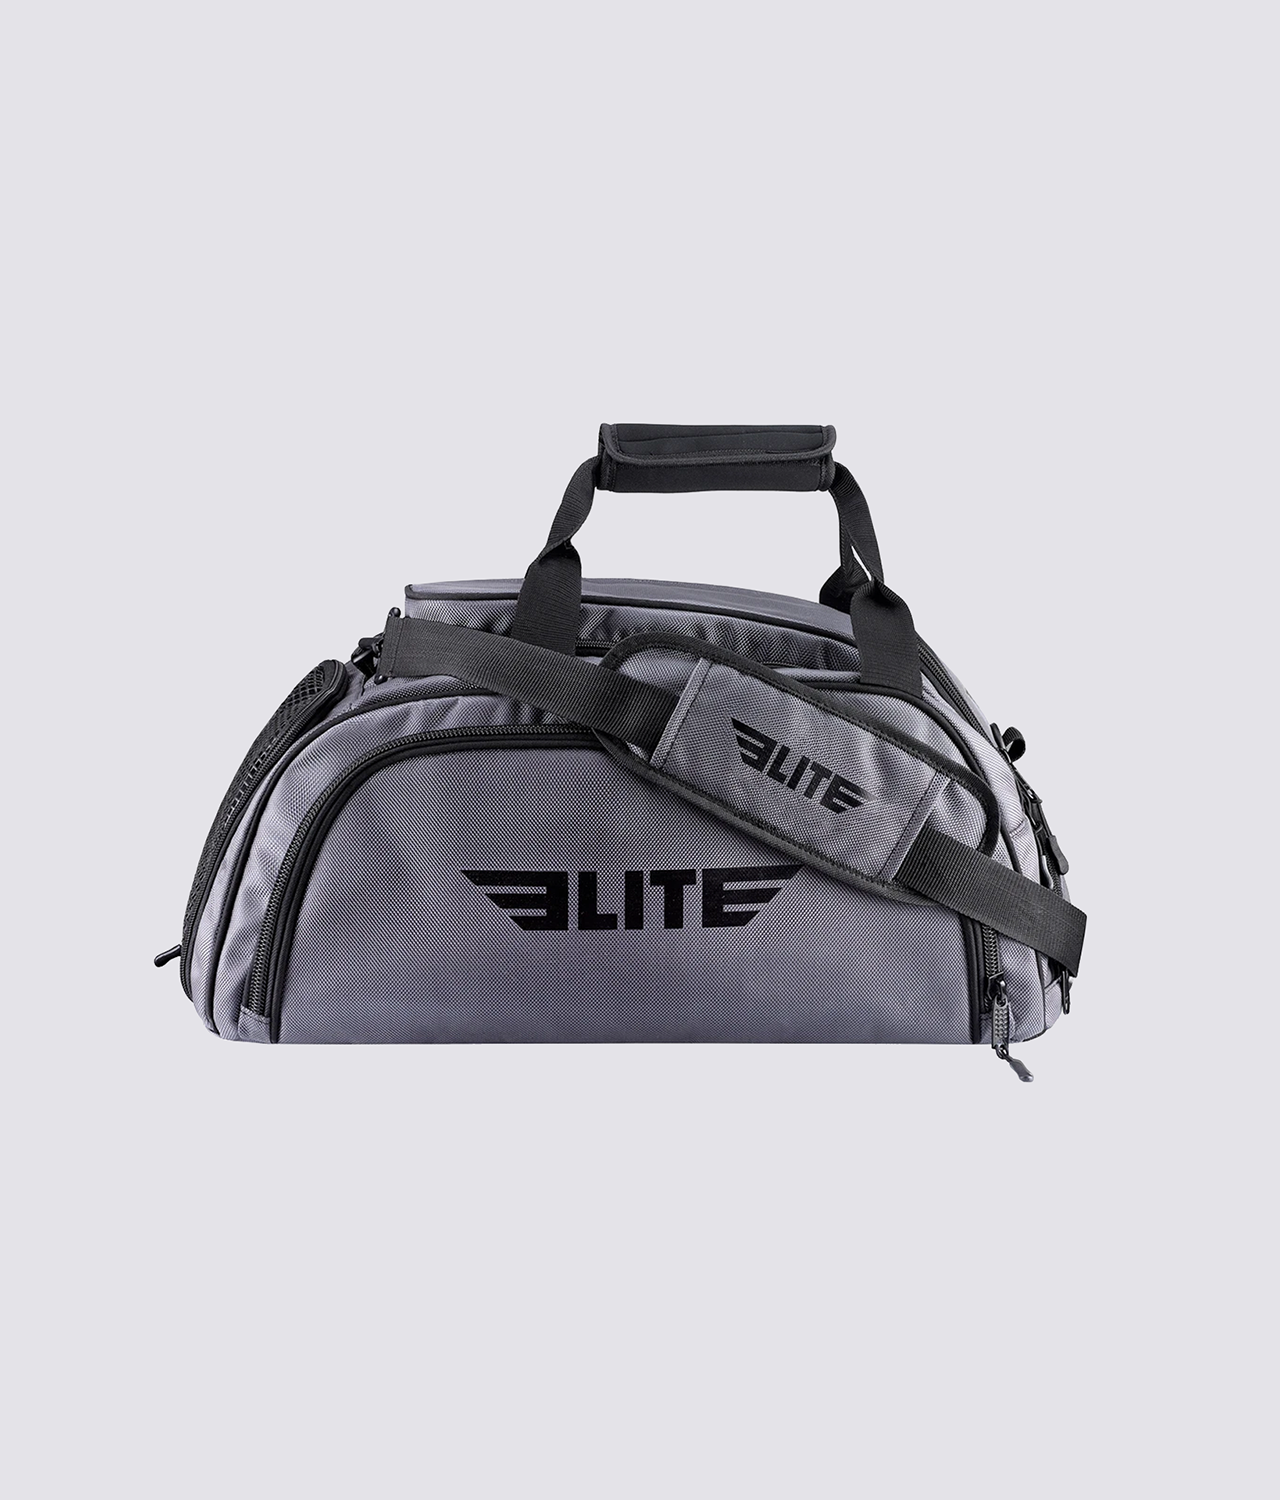 Elite Sports Warrior Series Gray Large Duffel MMA Gear Gym Bag & Backpack